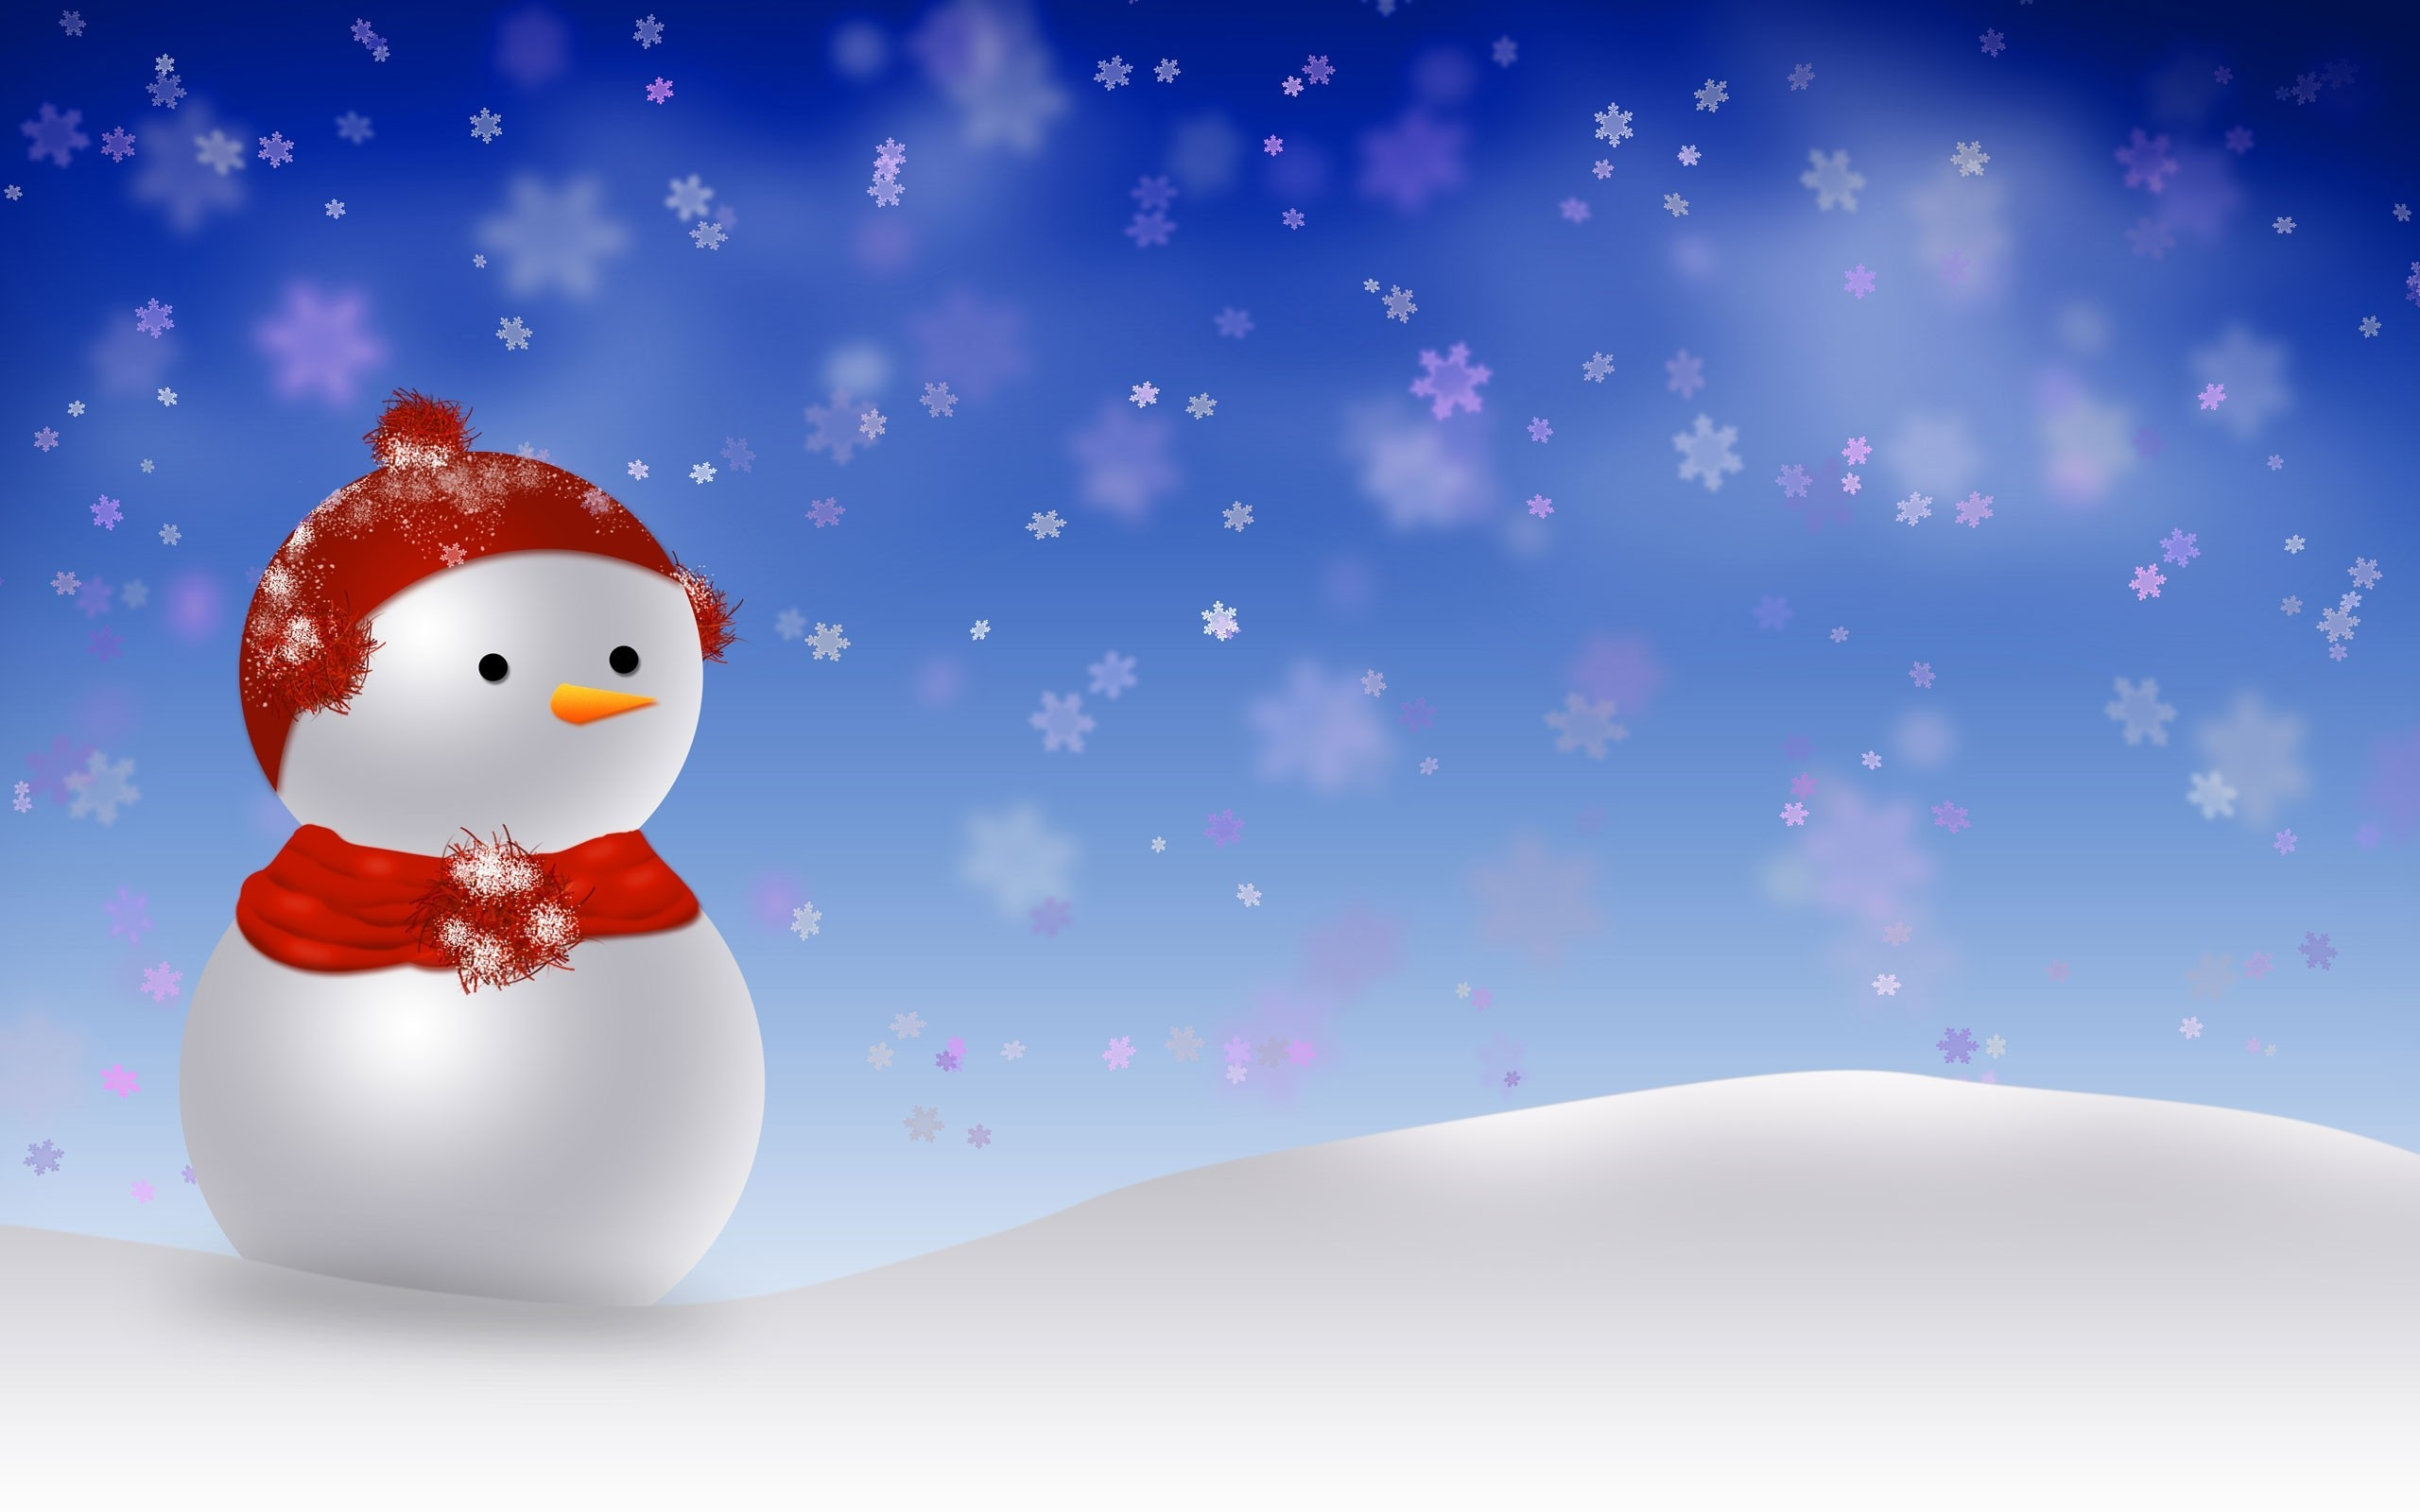 Animated Christmas Desktop Wallpaper 54+ images